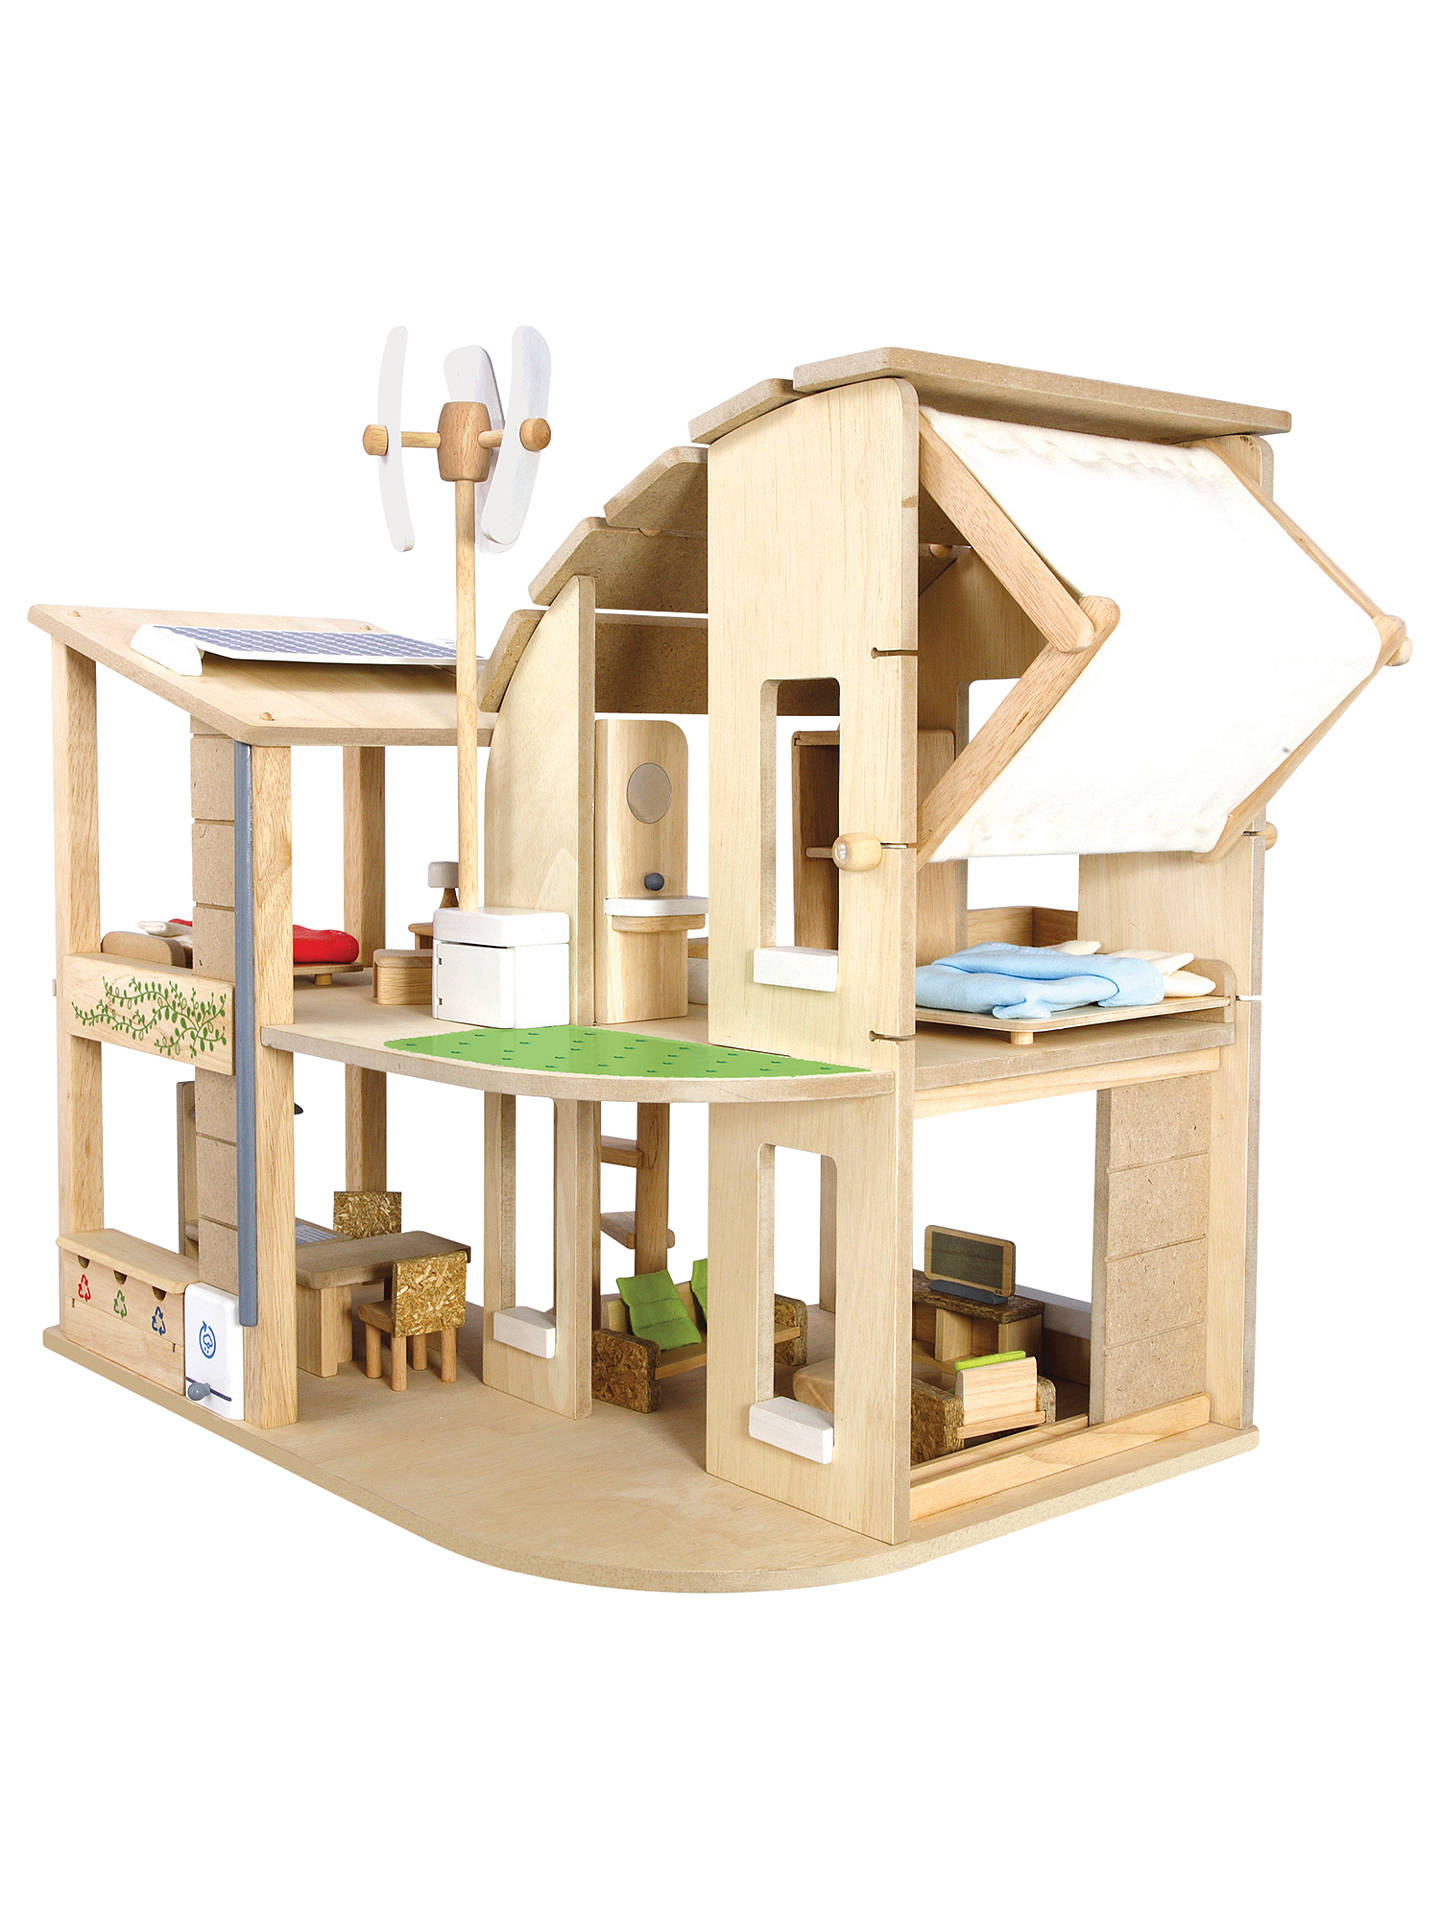 plan toys green dollhouse at john lewis & partners